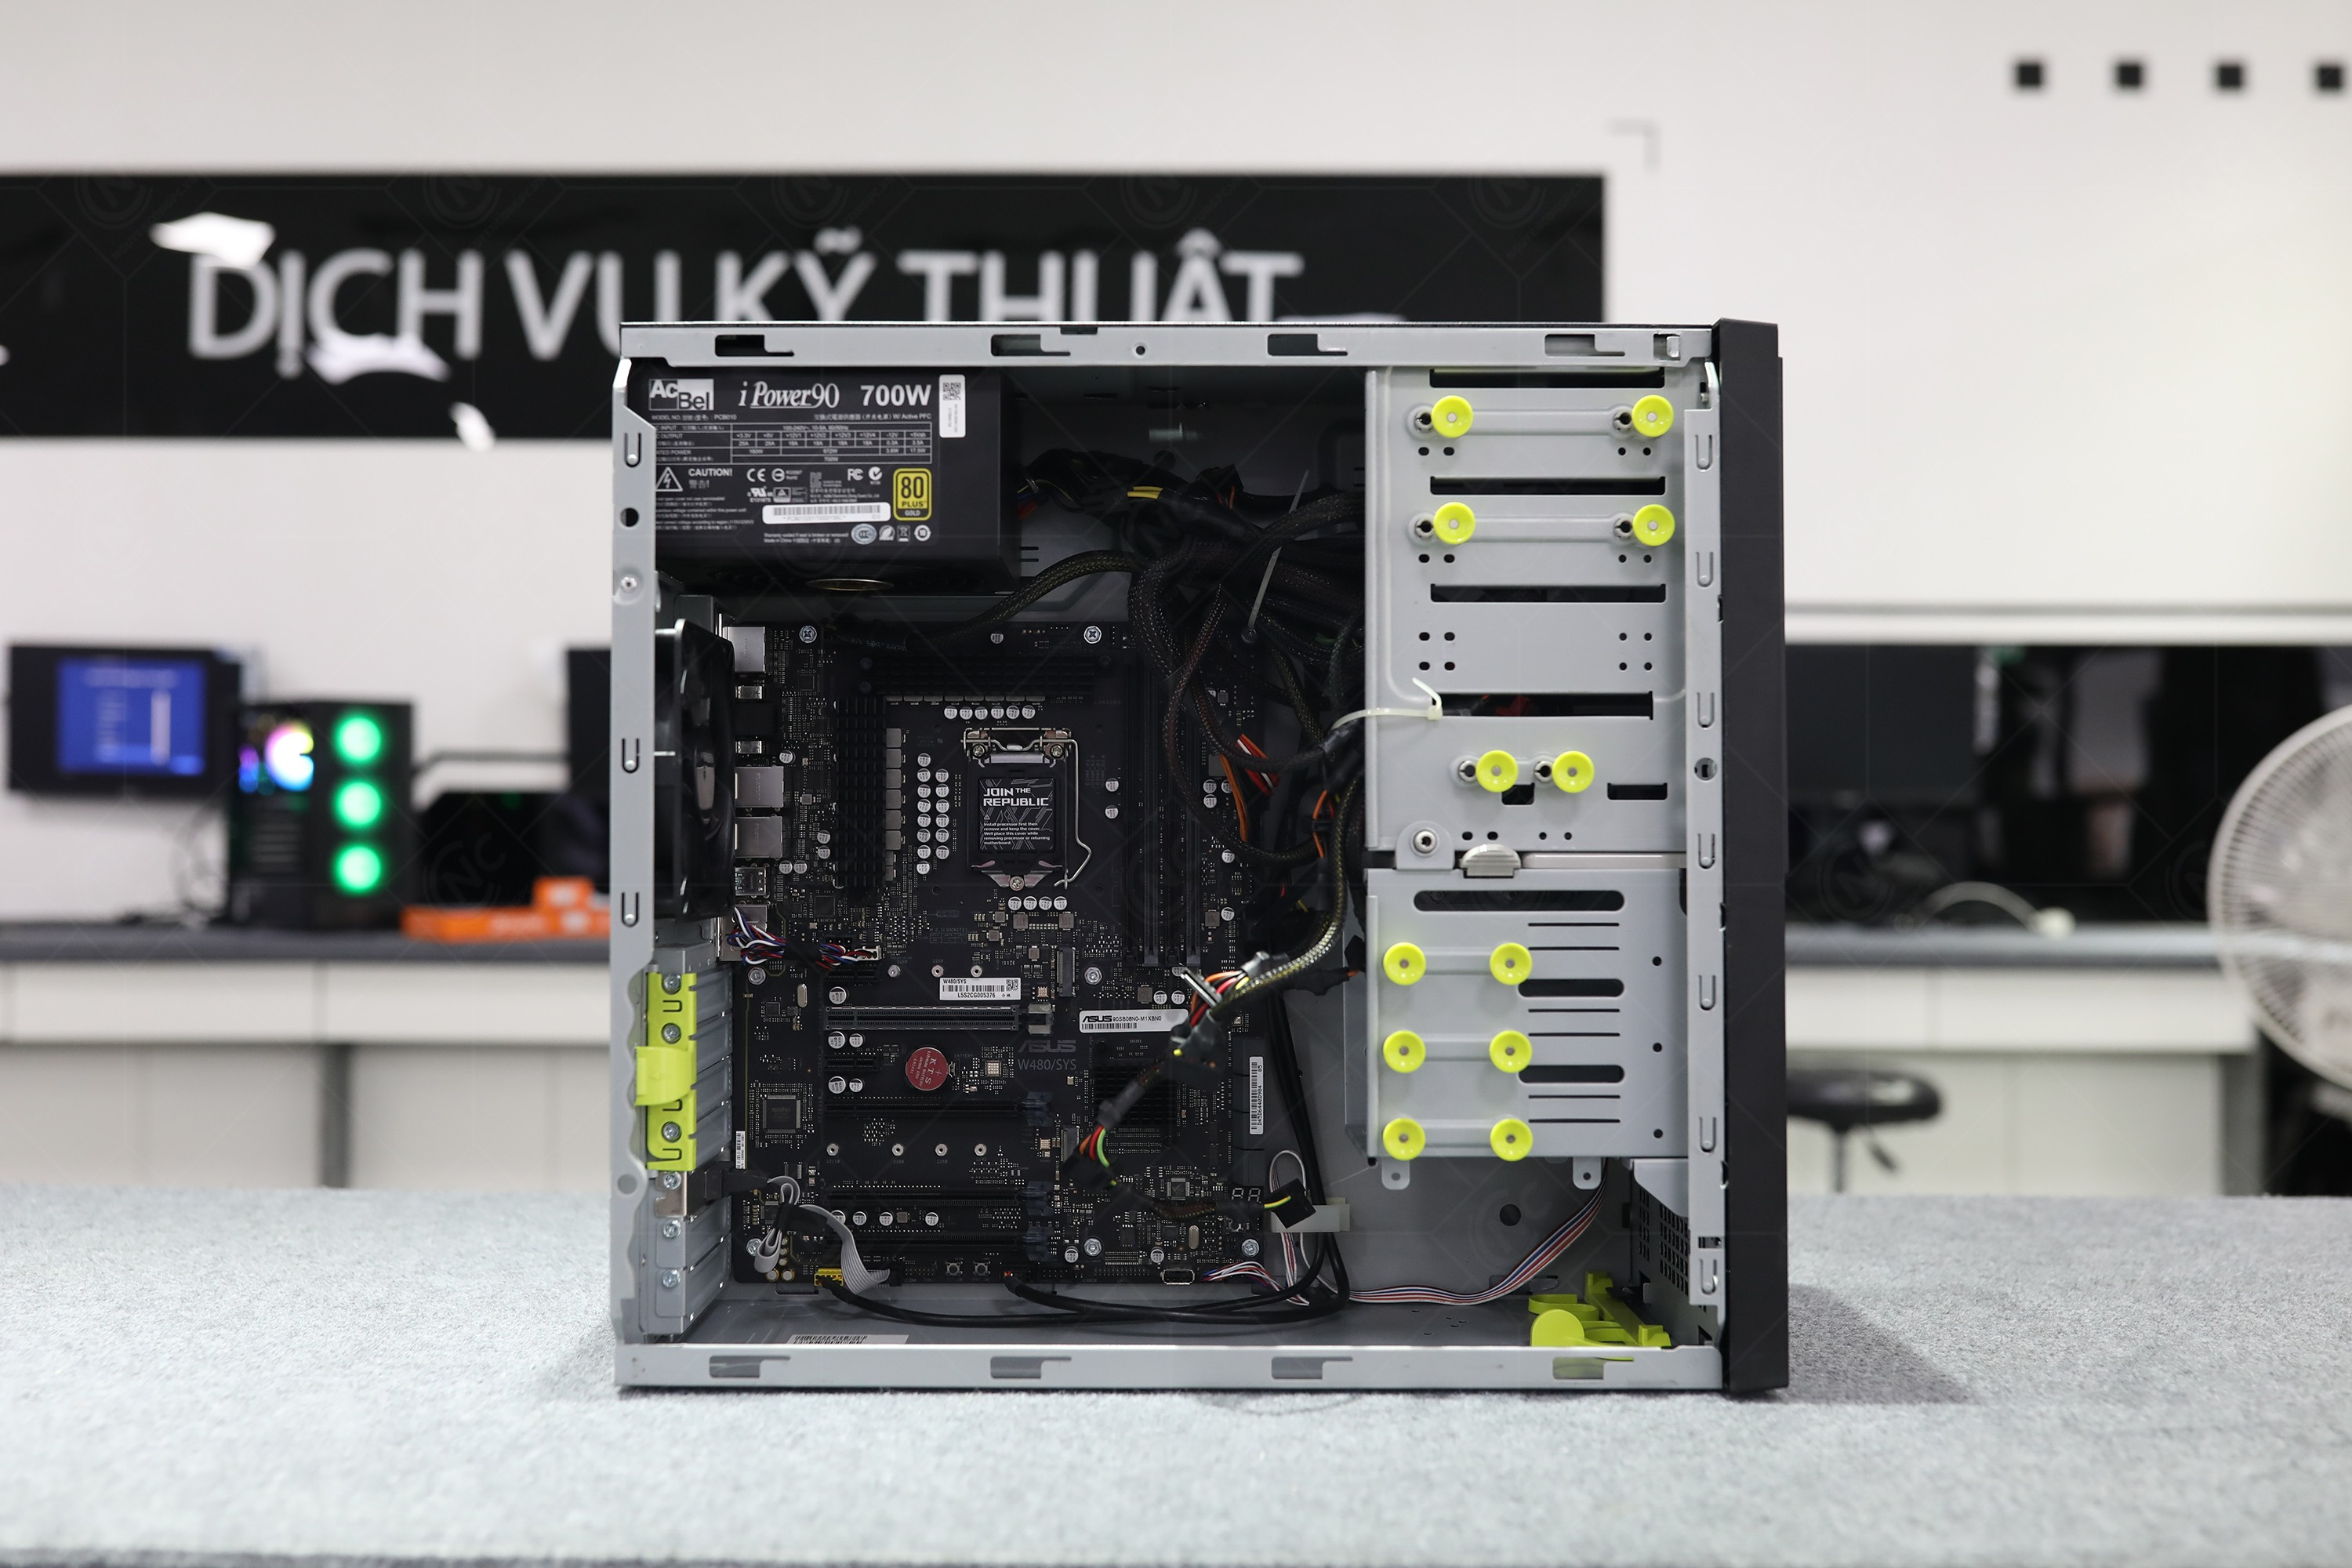 may-tinh-dong-bo-workstations-asus-pro-e500-g6-1250004z-xeon-w-1250